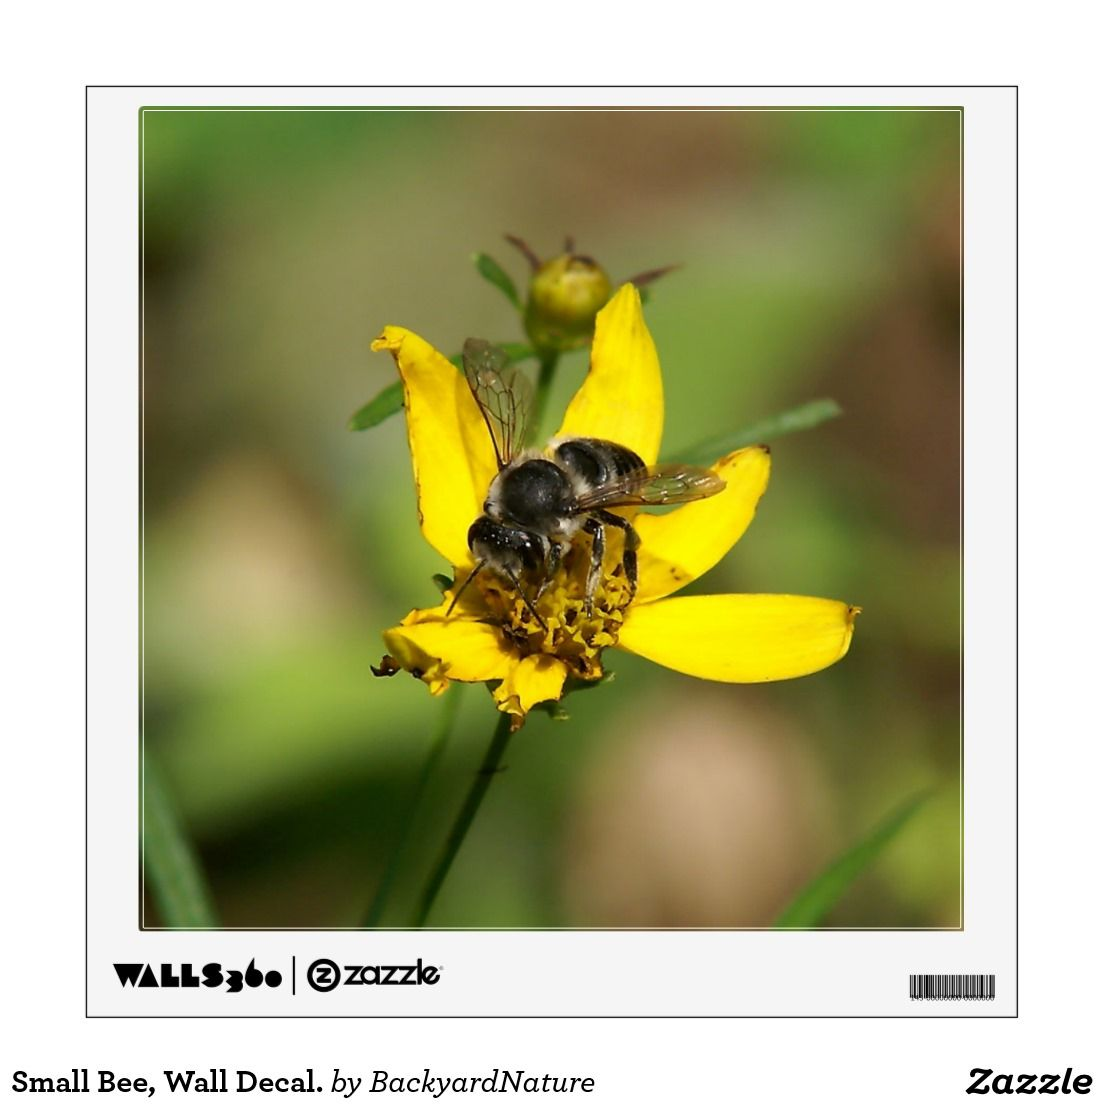 Small Bee, Wall Decal. Wall Decal | Small bees